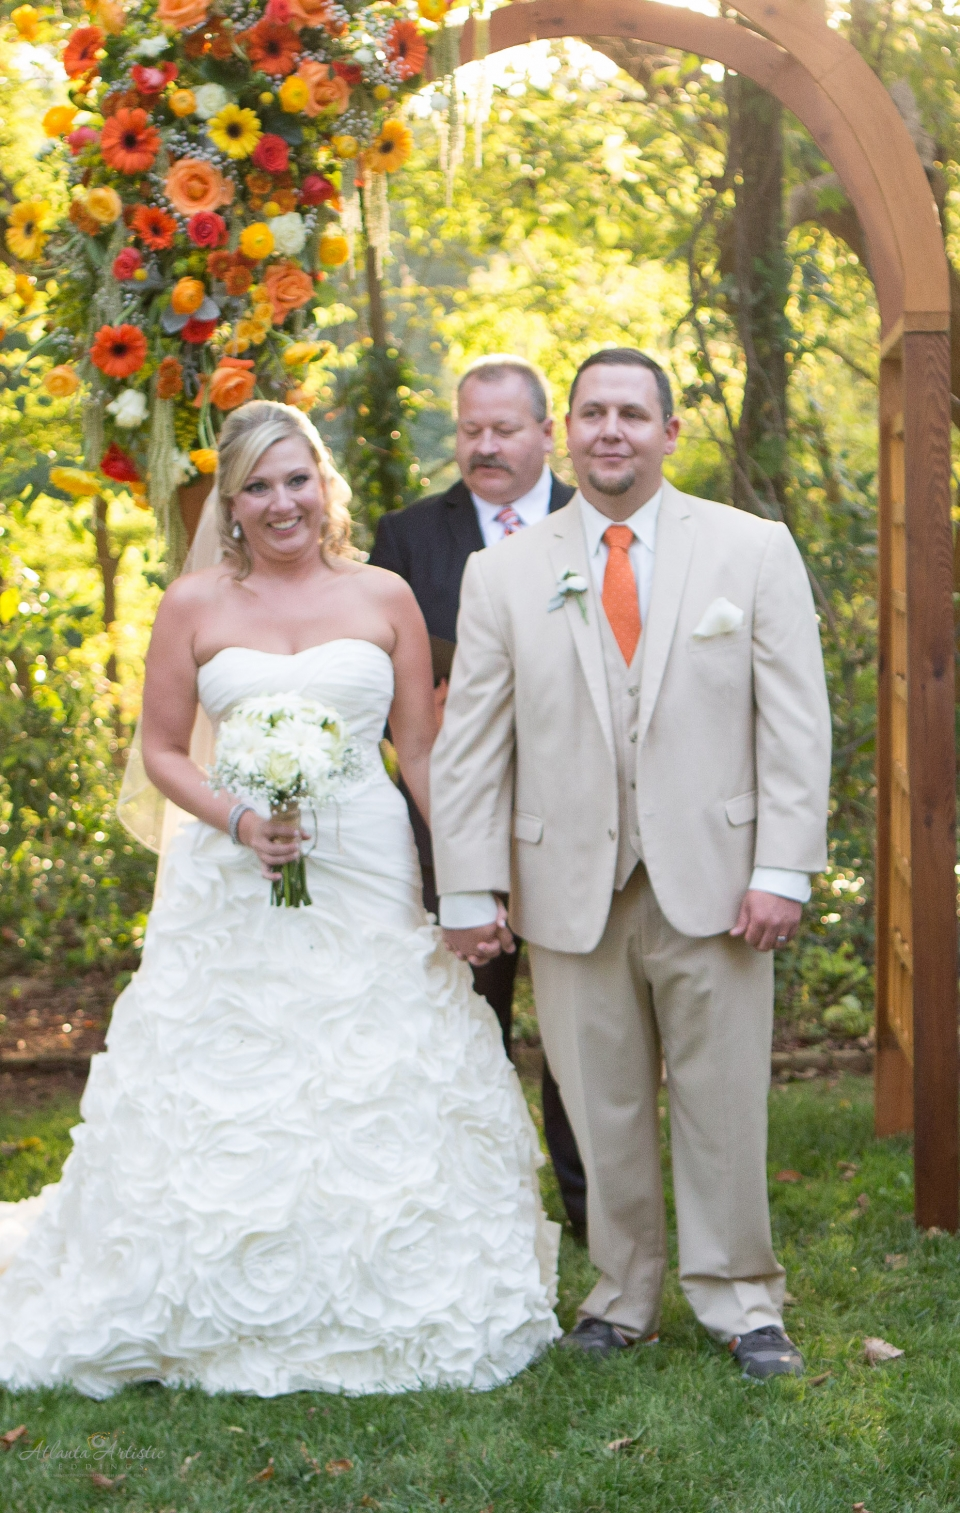 Atlanta Artistic Weddings